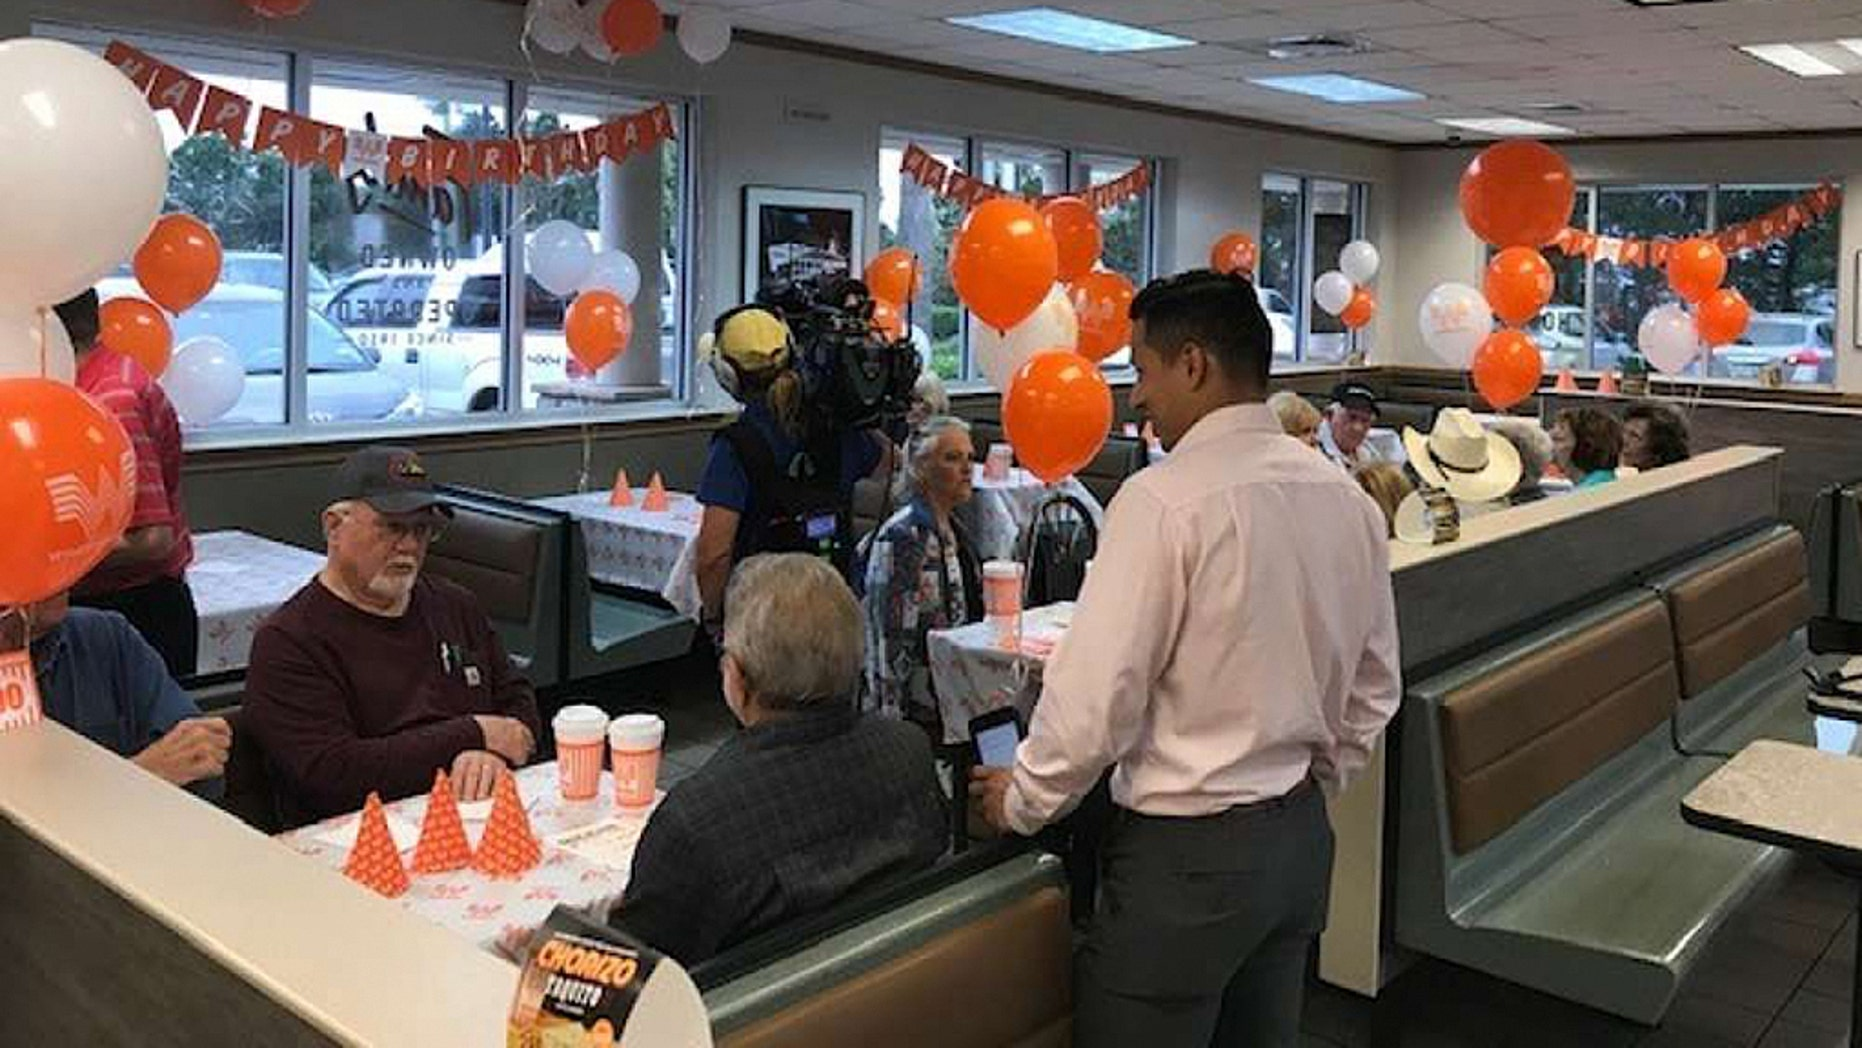 90-year-old Bobie Miller was in for the surprise of a lifetime when he walked into his local Spring, Texas, Whataburger.